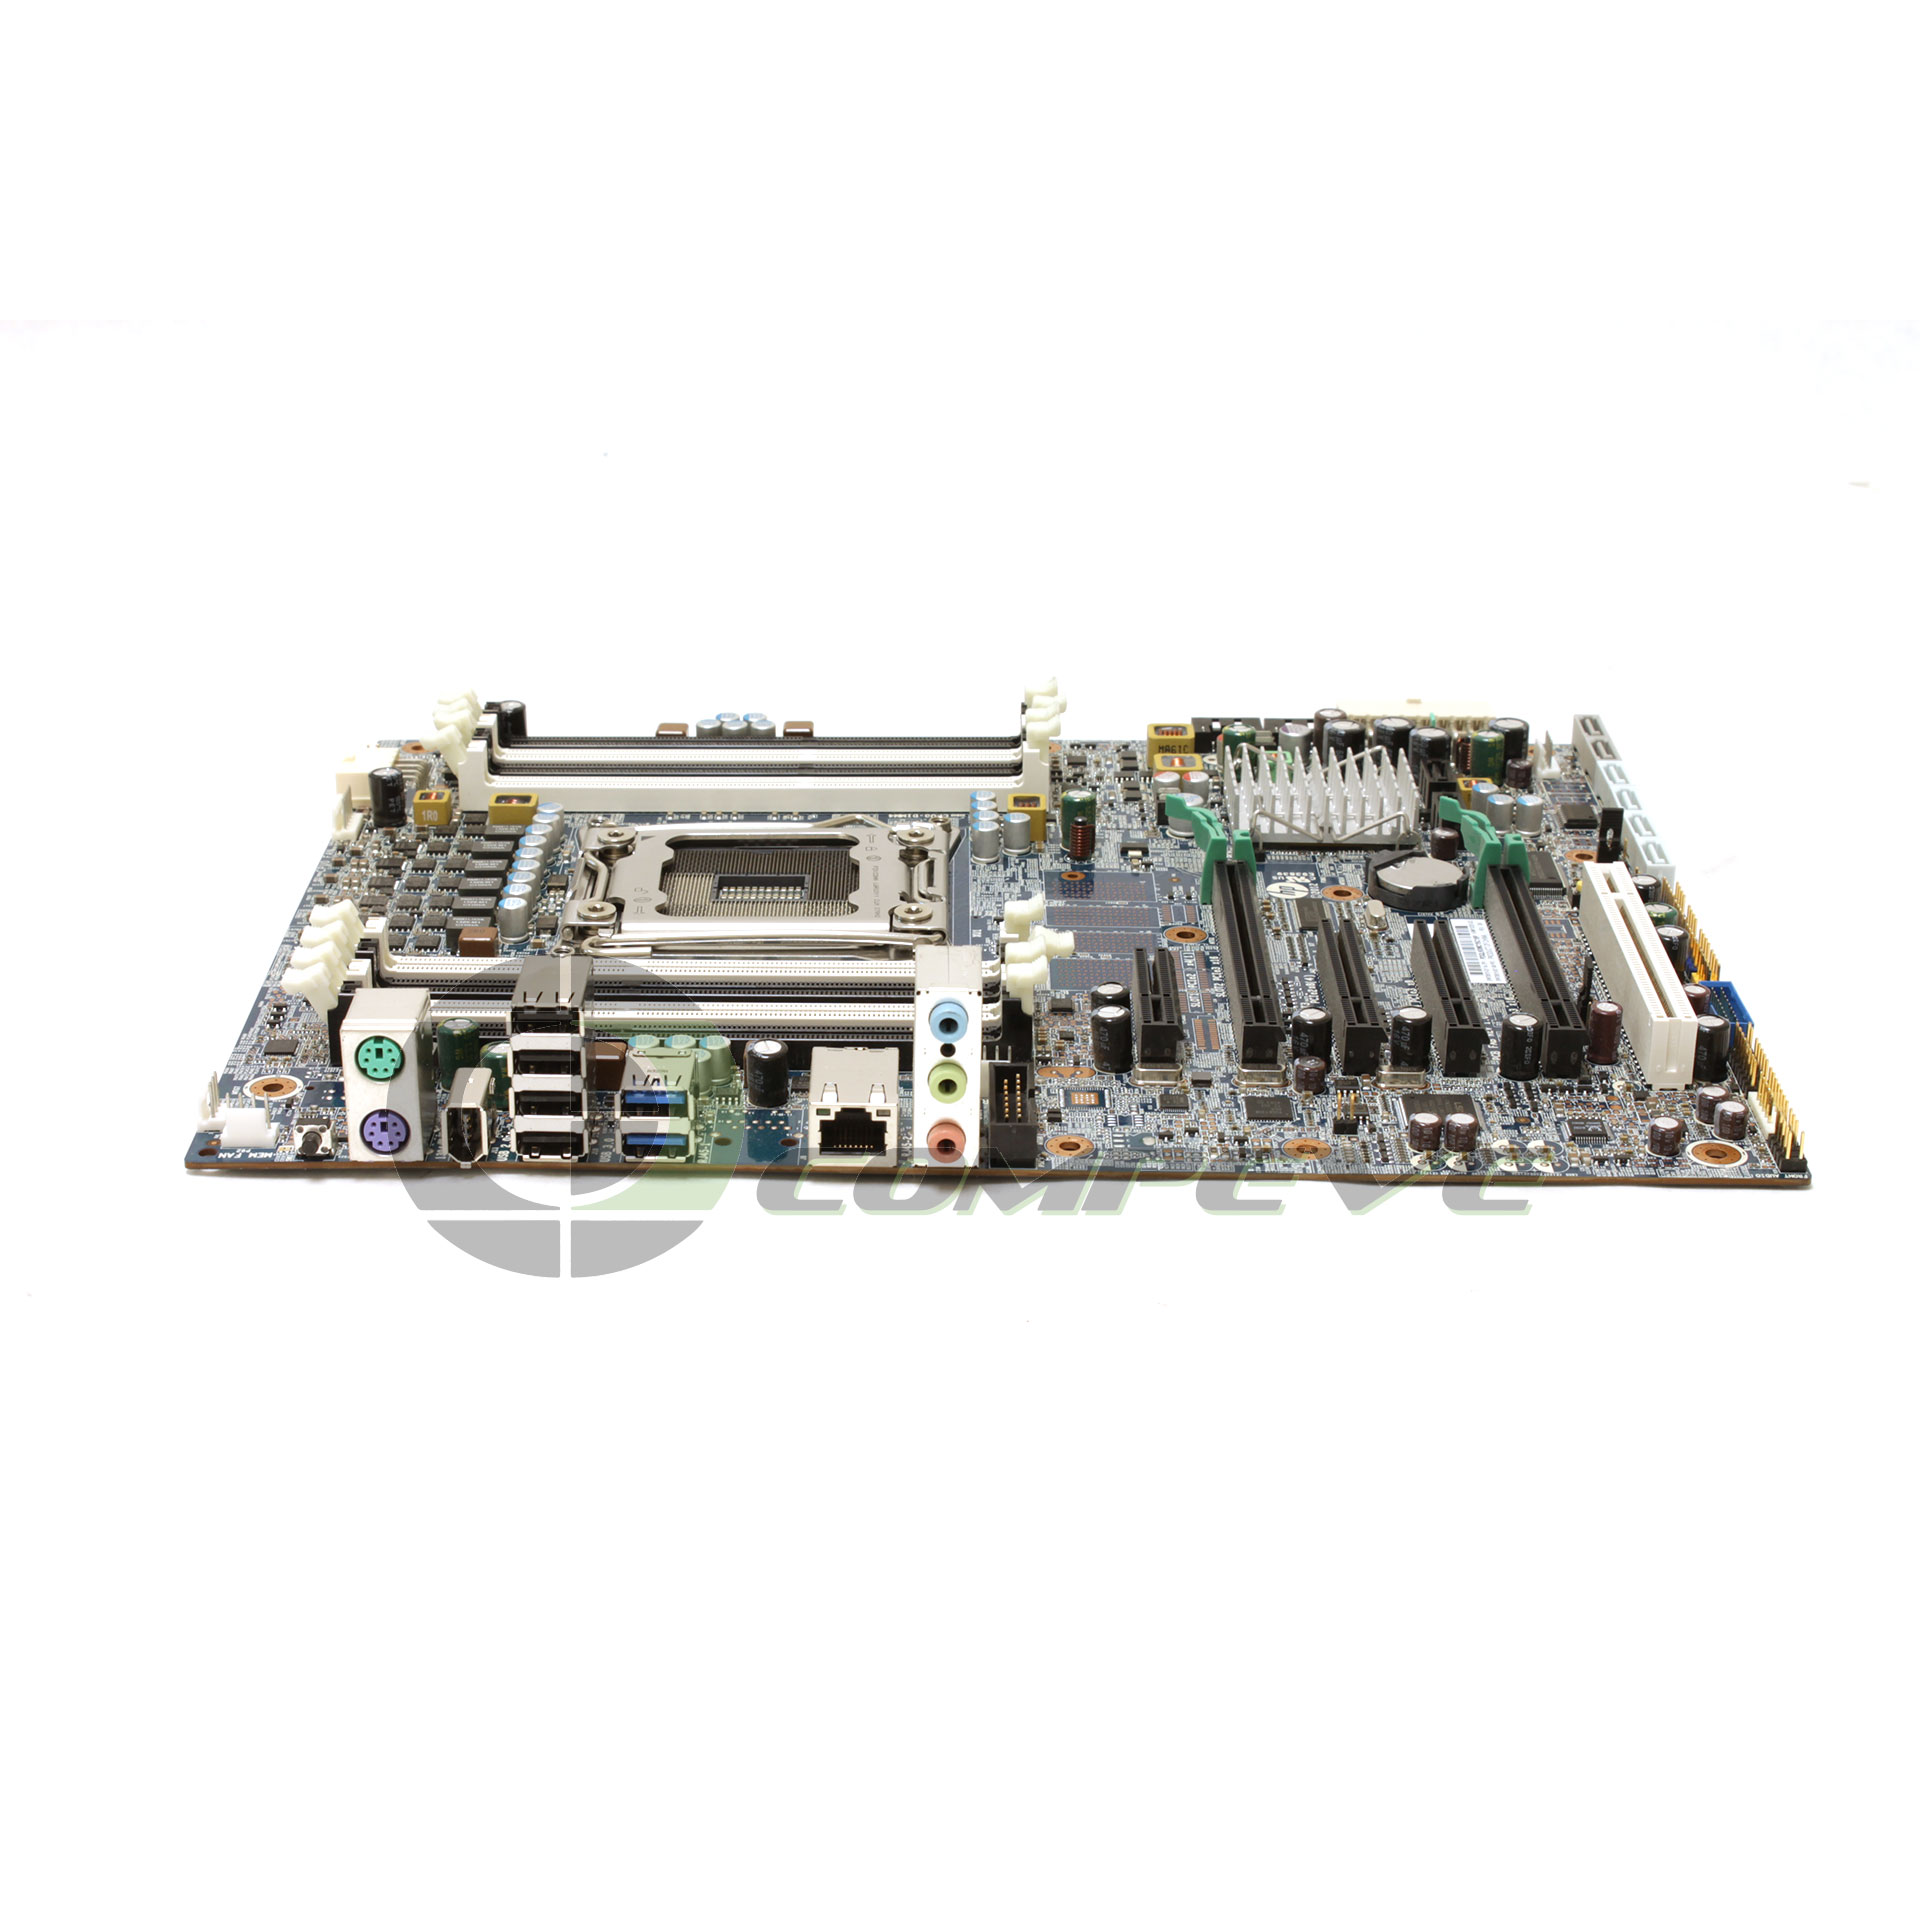 HP Z420 MOTHERBOARD ASSLY 618263-002 Spare 708615-001 708615